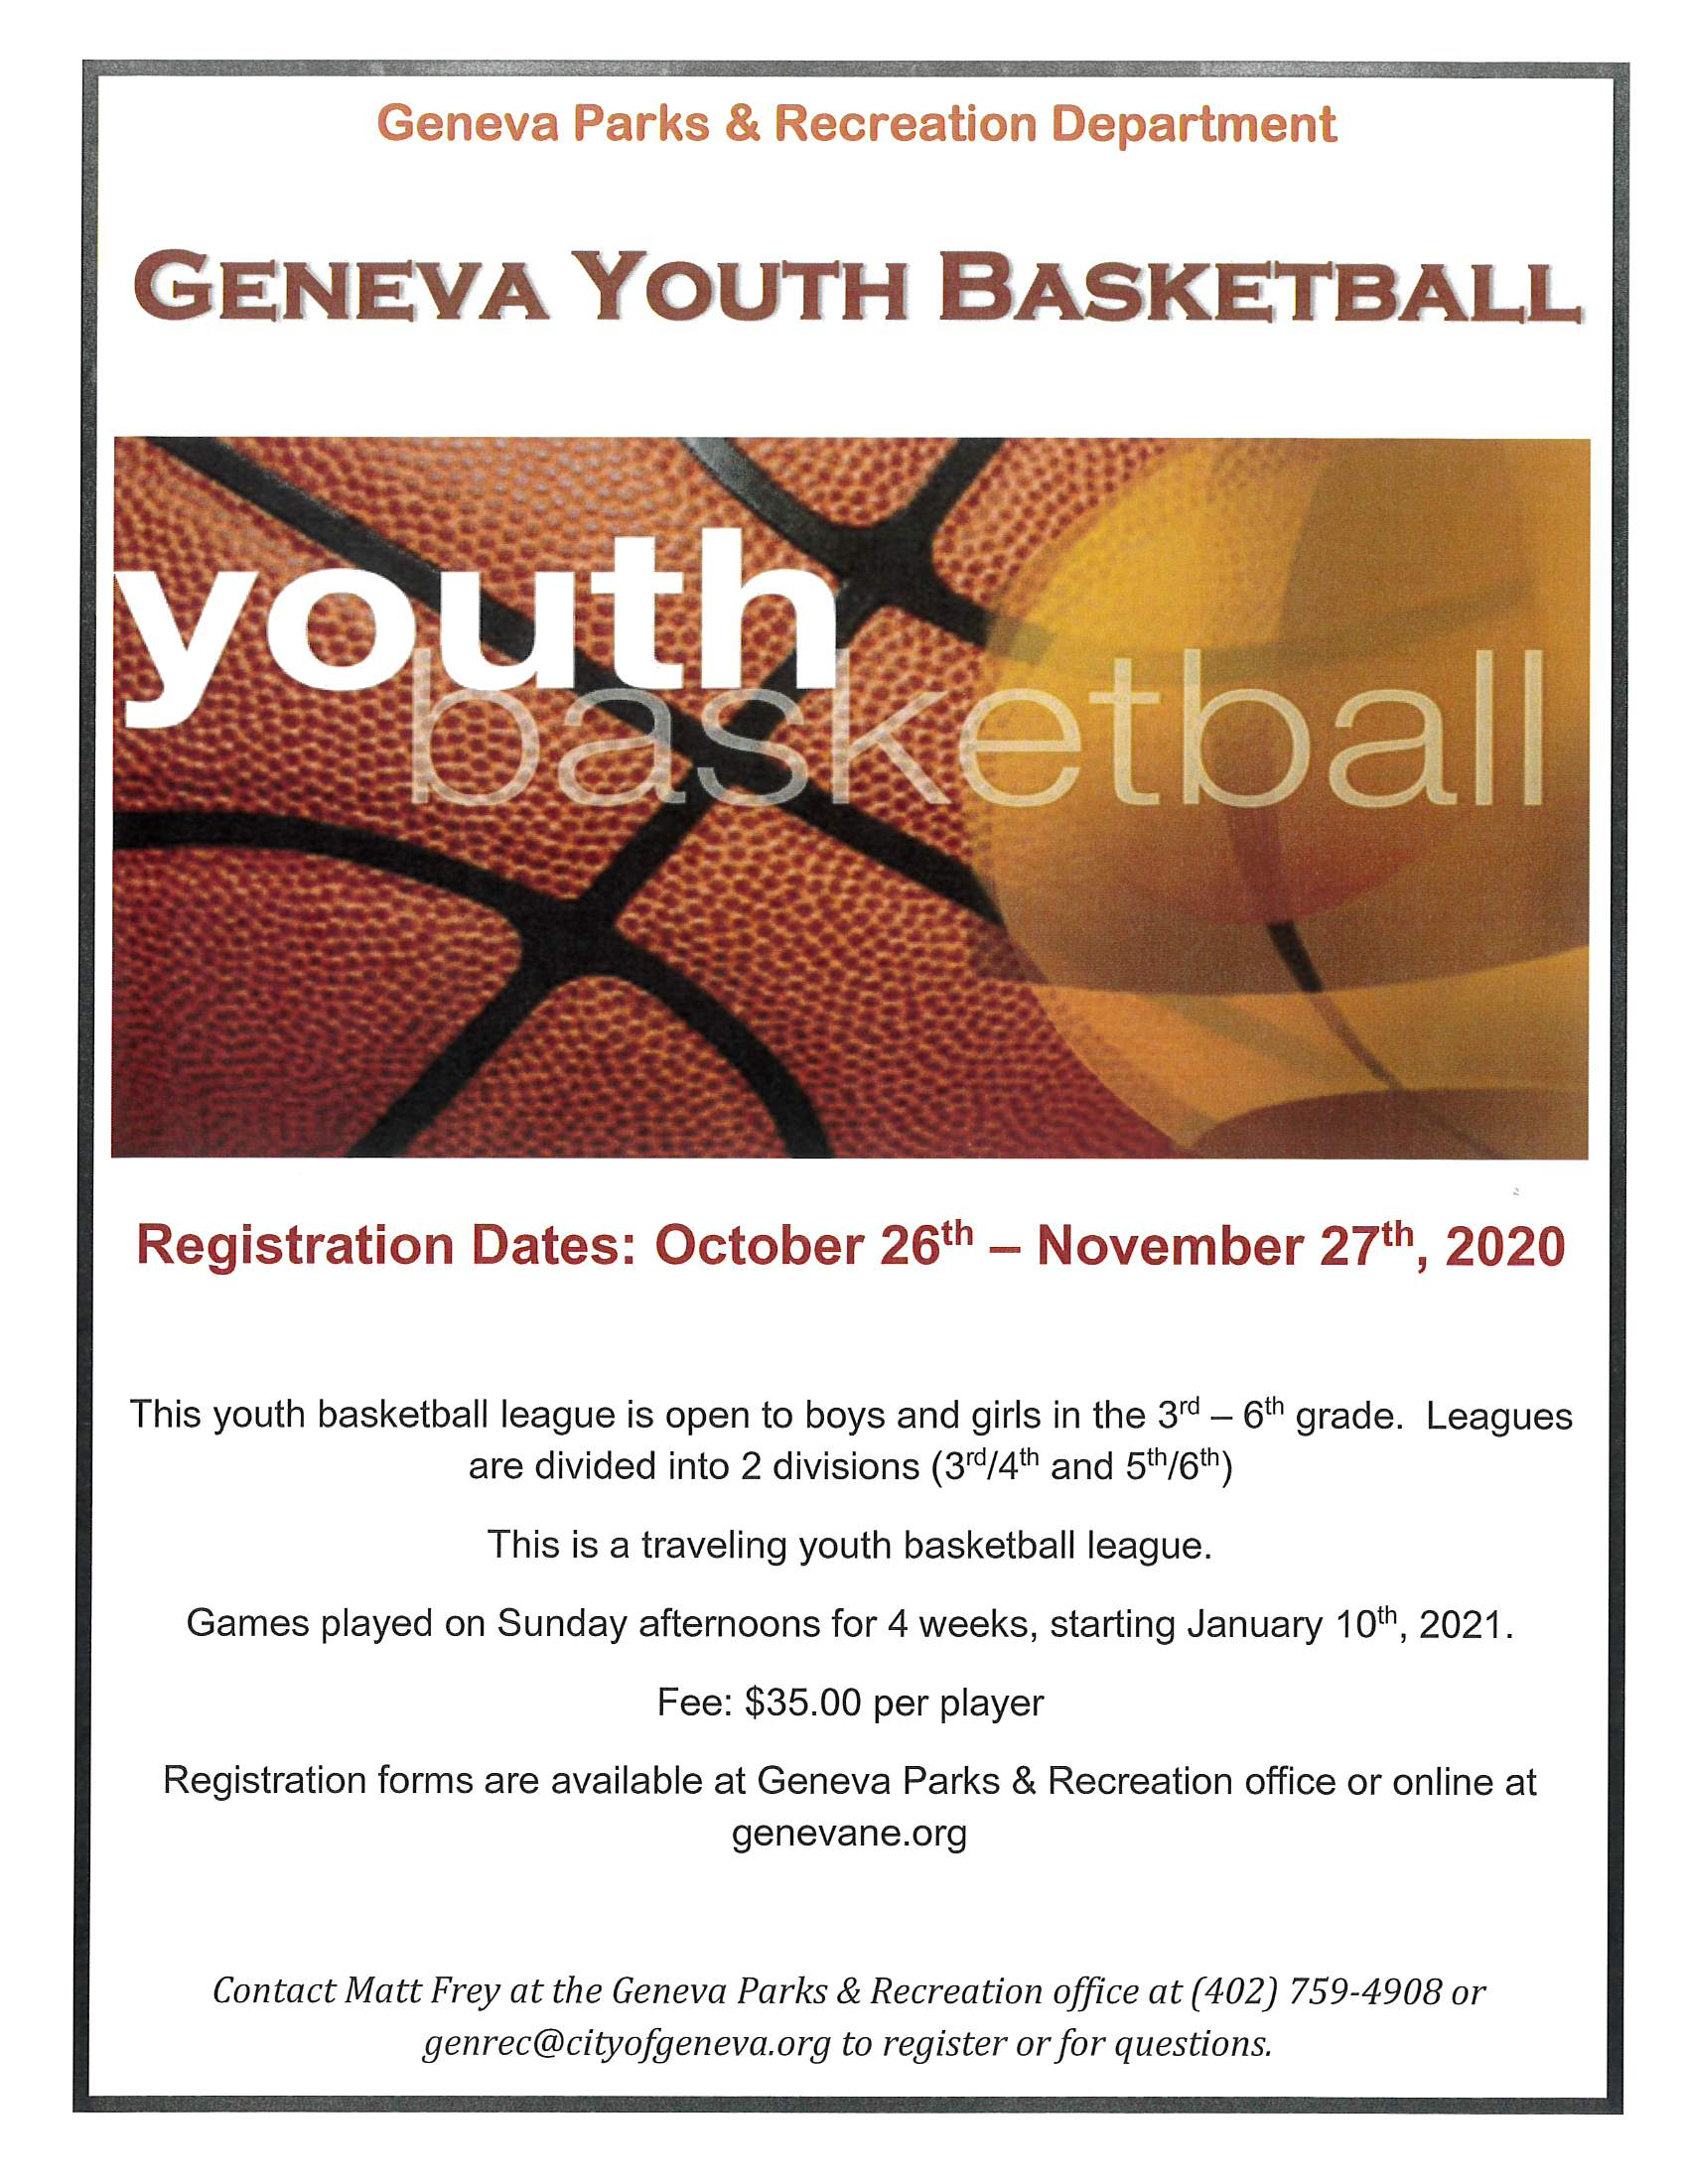 2021 Youth Basketball-Geneva only